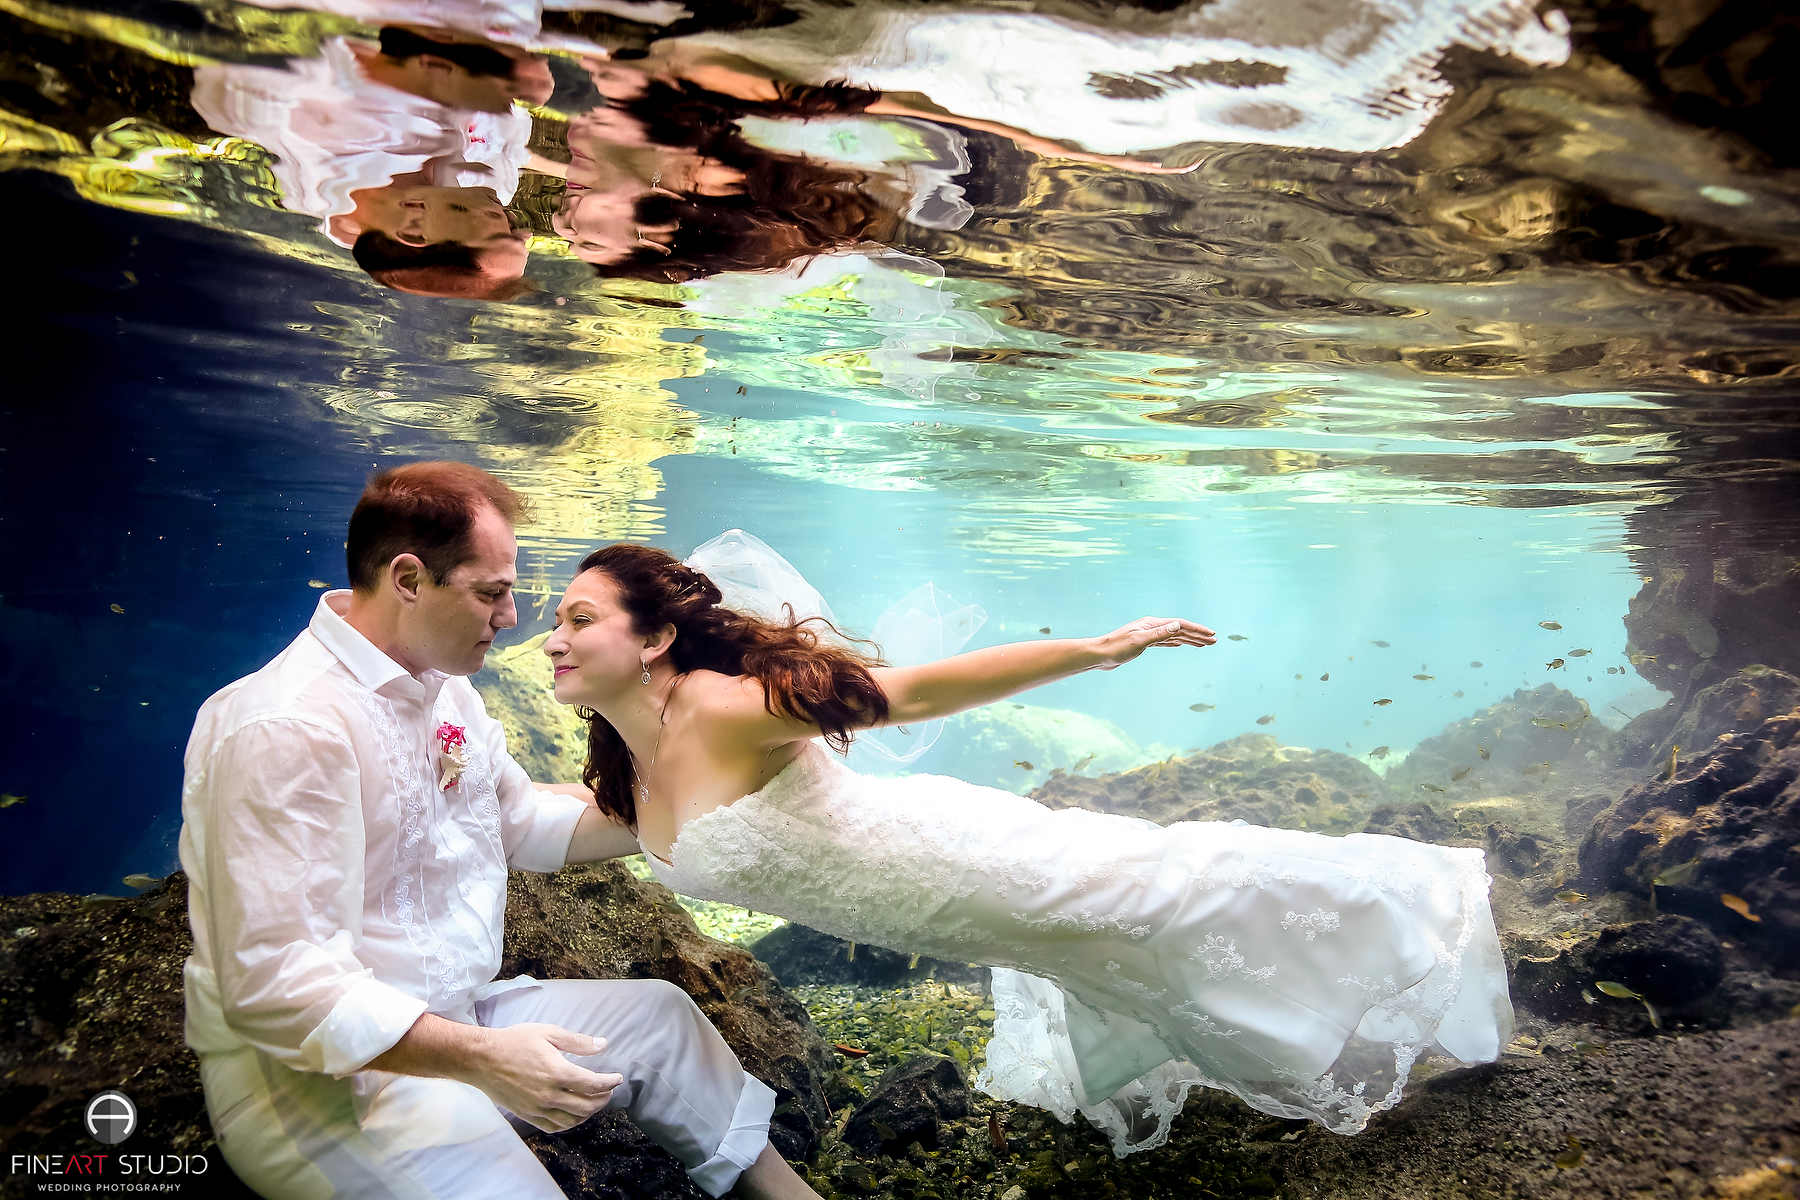 Underwater Trash the Dress Photography Mexico - FineArt Studio